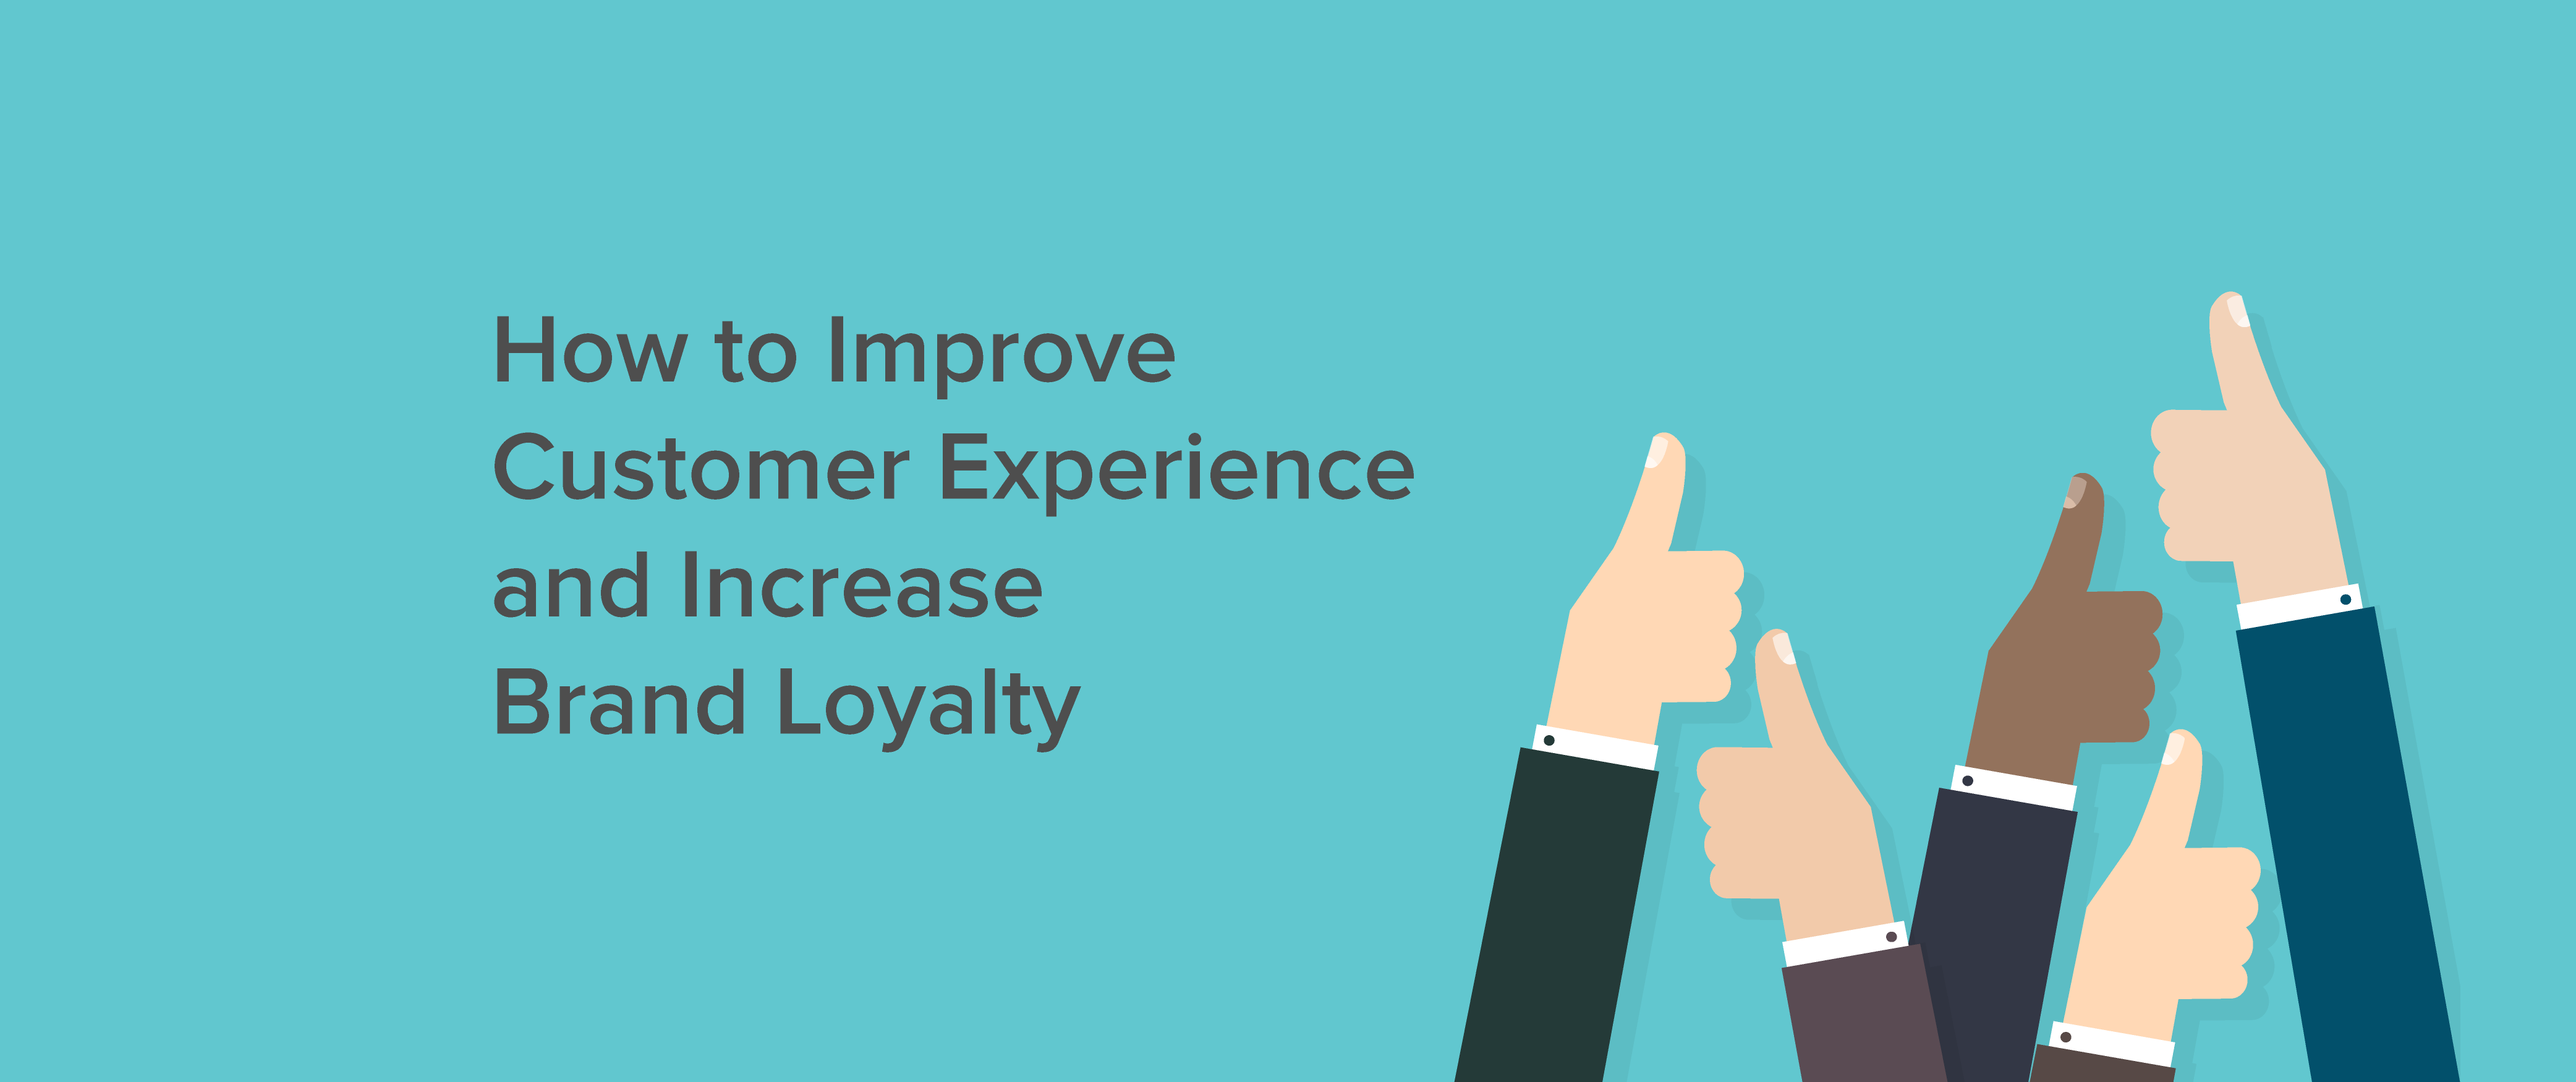 How to Improve Customer Experience and Increase Brand Loyalty as an Online Retailer